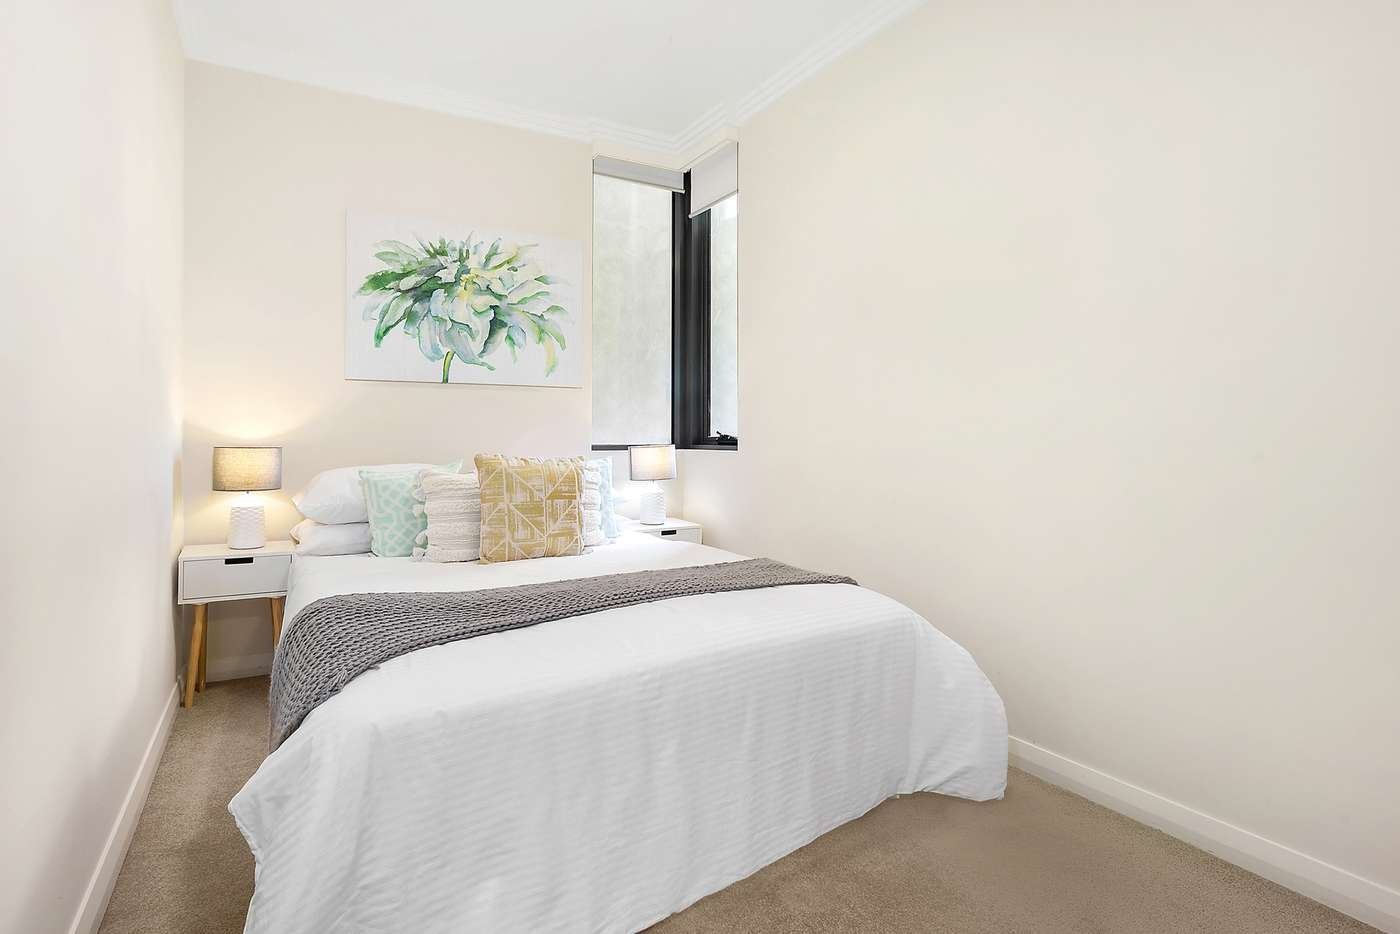 Fifth view of Homely apartment listing, 502/51-53 Hill Road, Wentworth Point NSW 2127